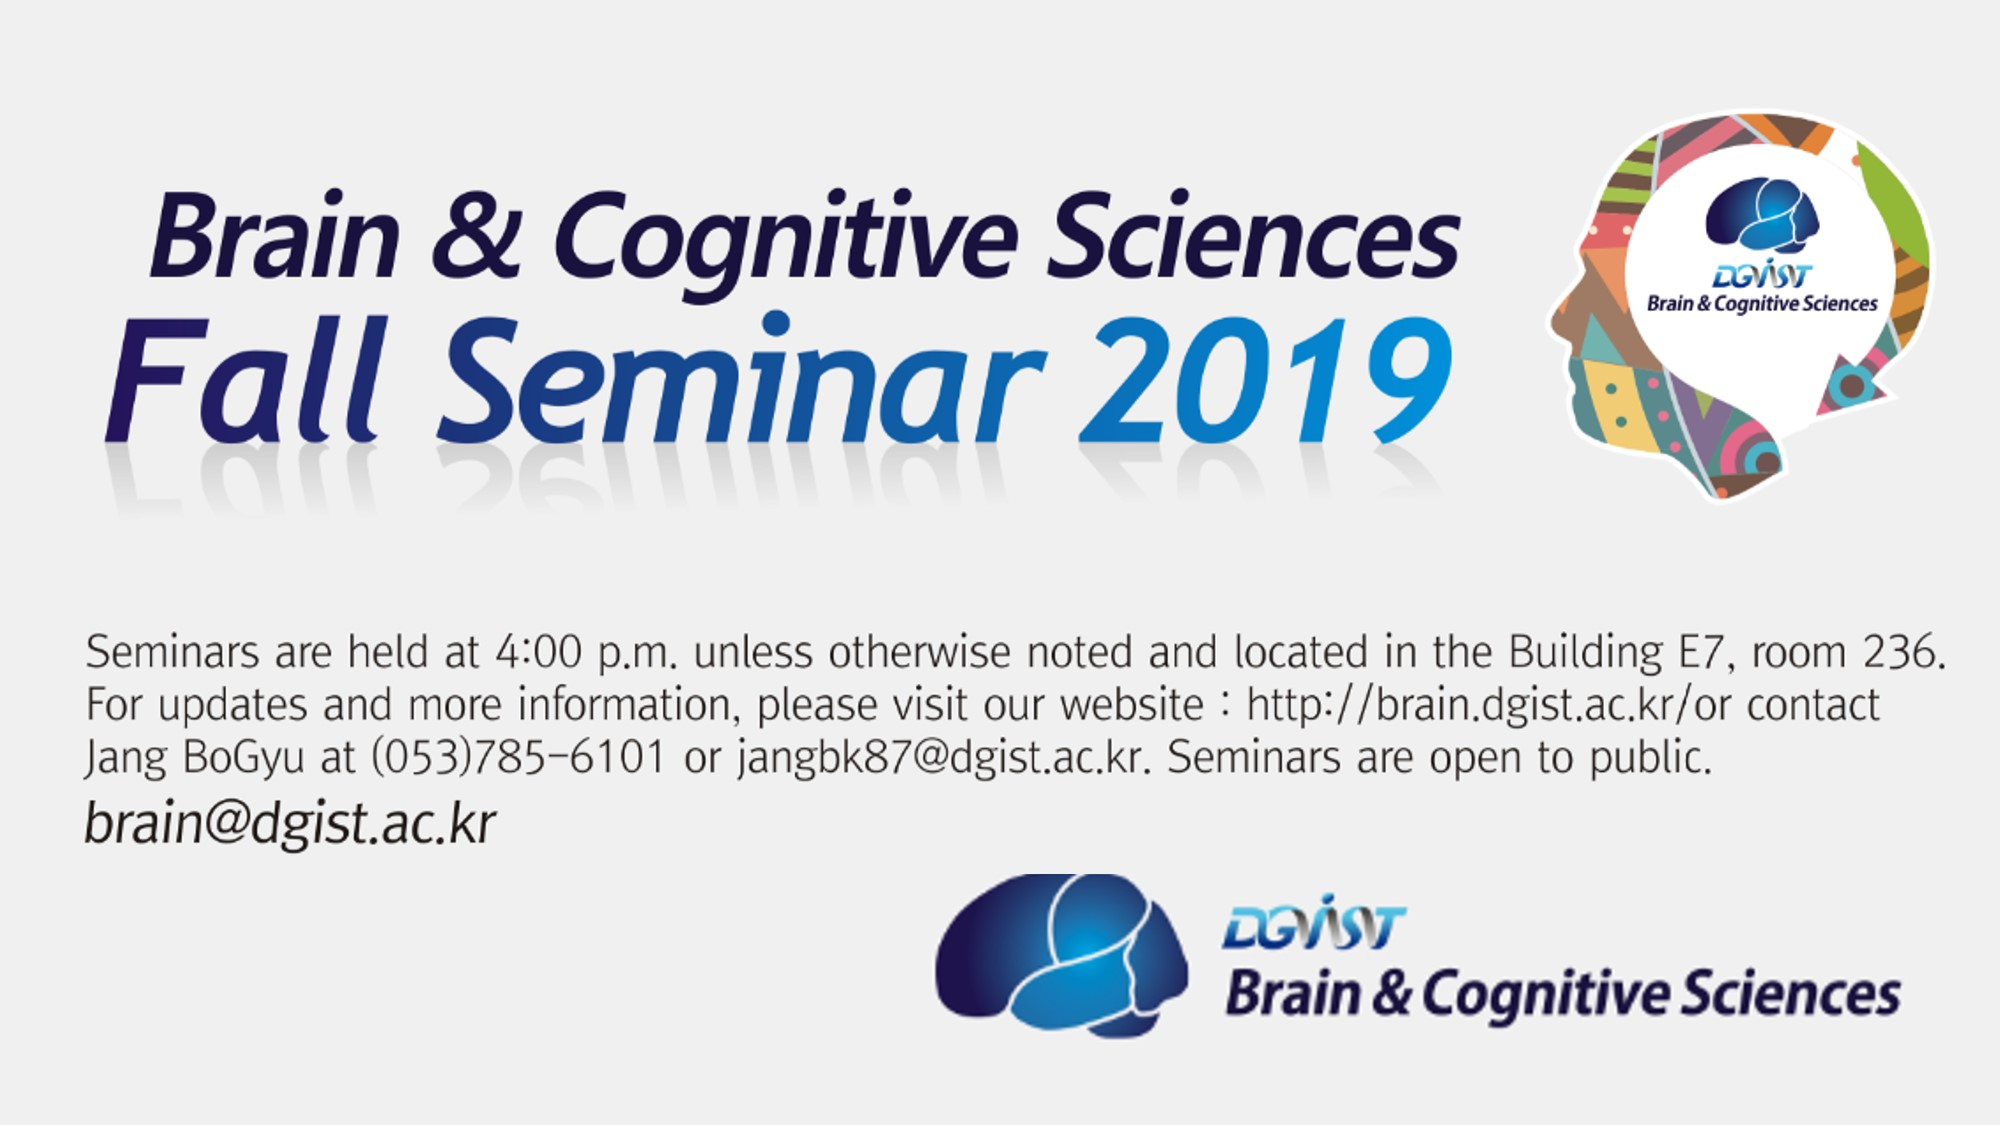 2019 Fall Seminar of Brain & Cognitive Sciences 이미지